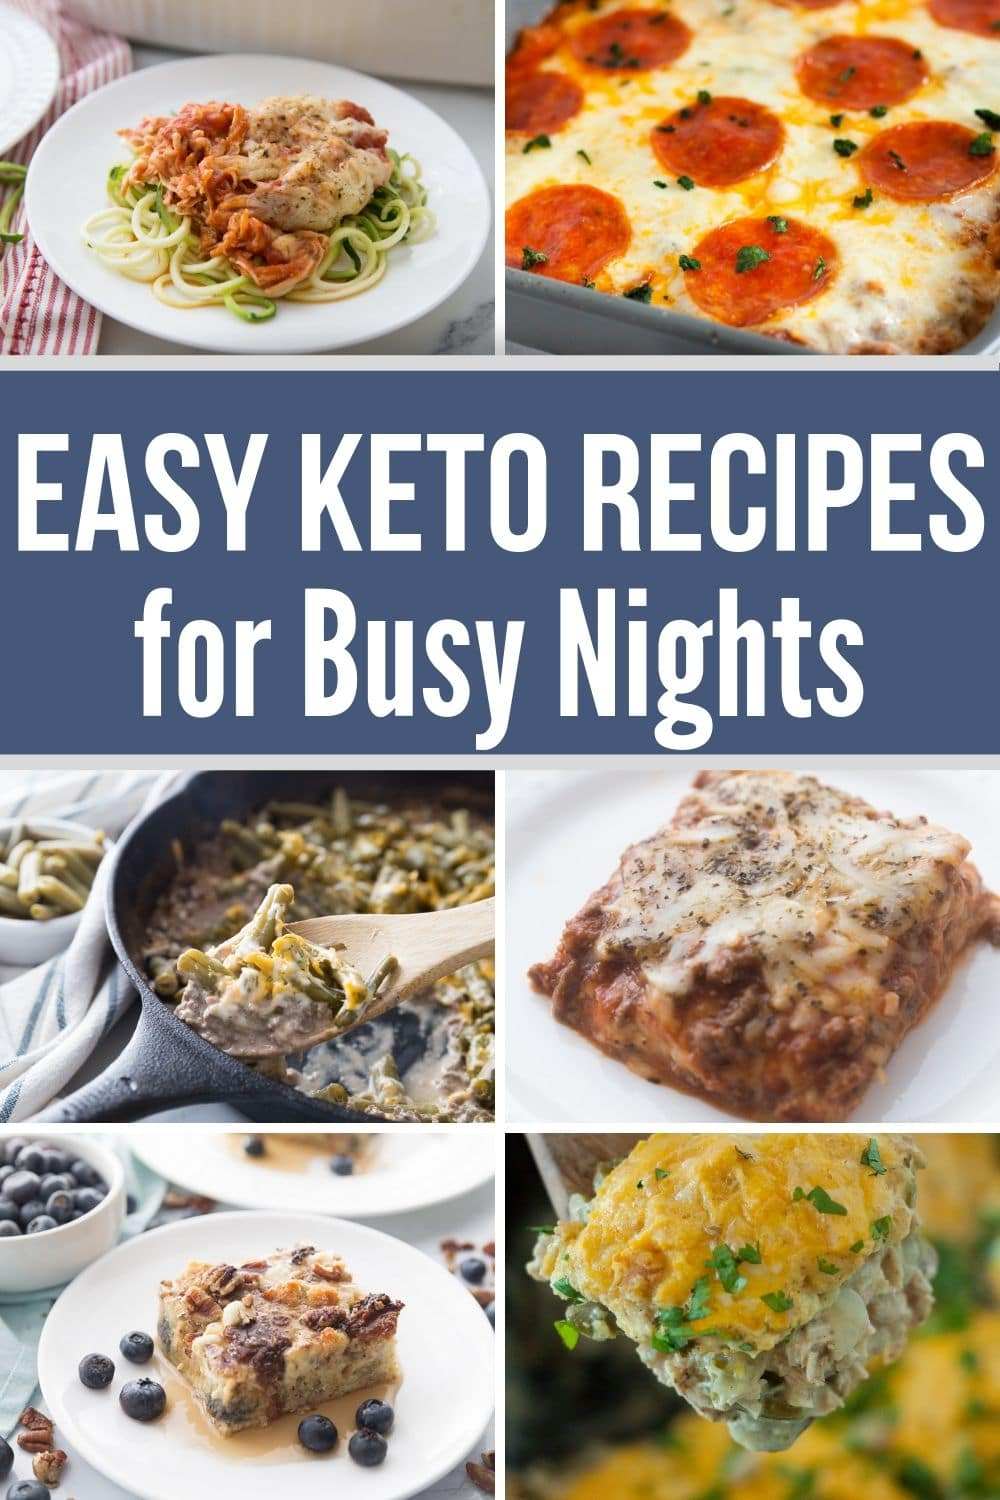 keto recipes easy diet busy meal nights kaseytrenum dinner delicious simple favorite carb low dishes